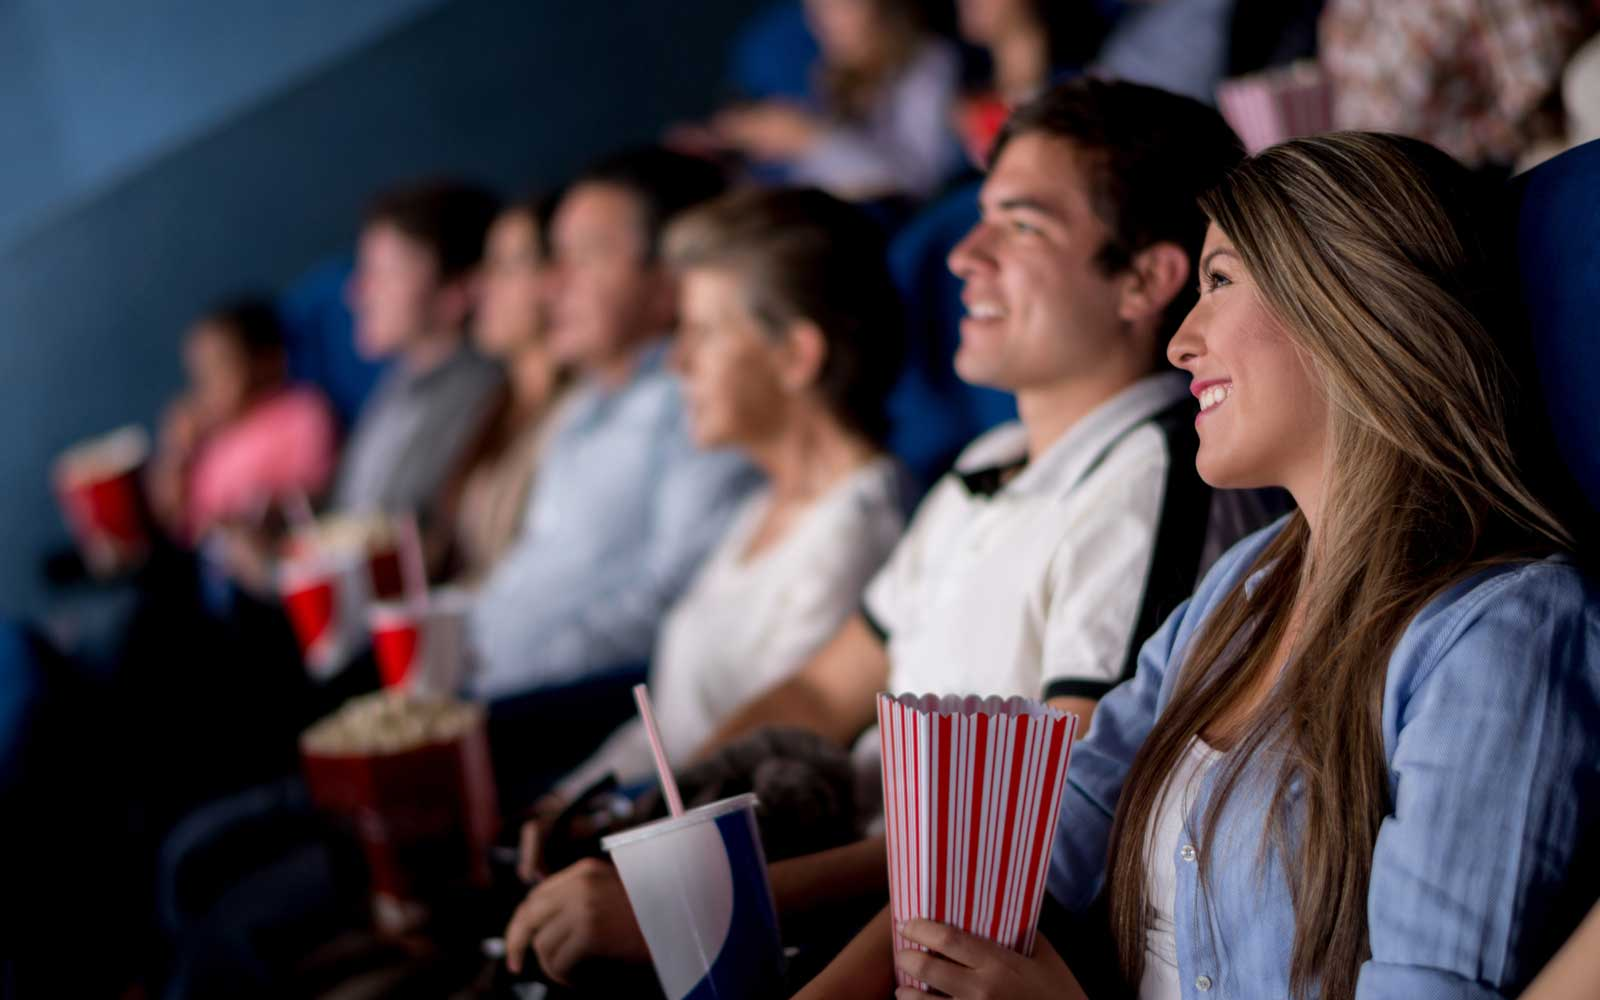 Group of people at the cinema looking happy